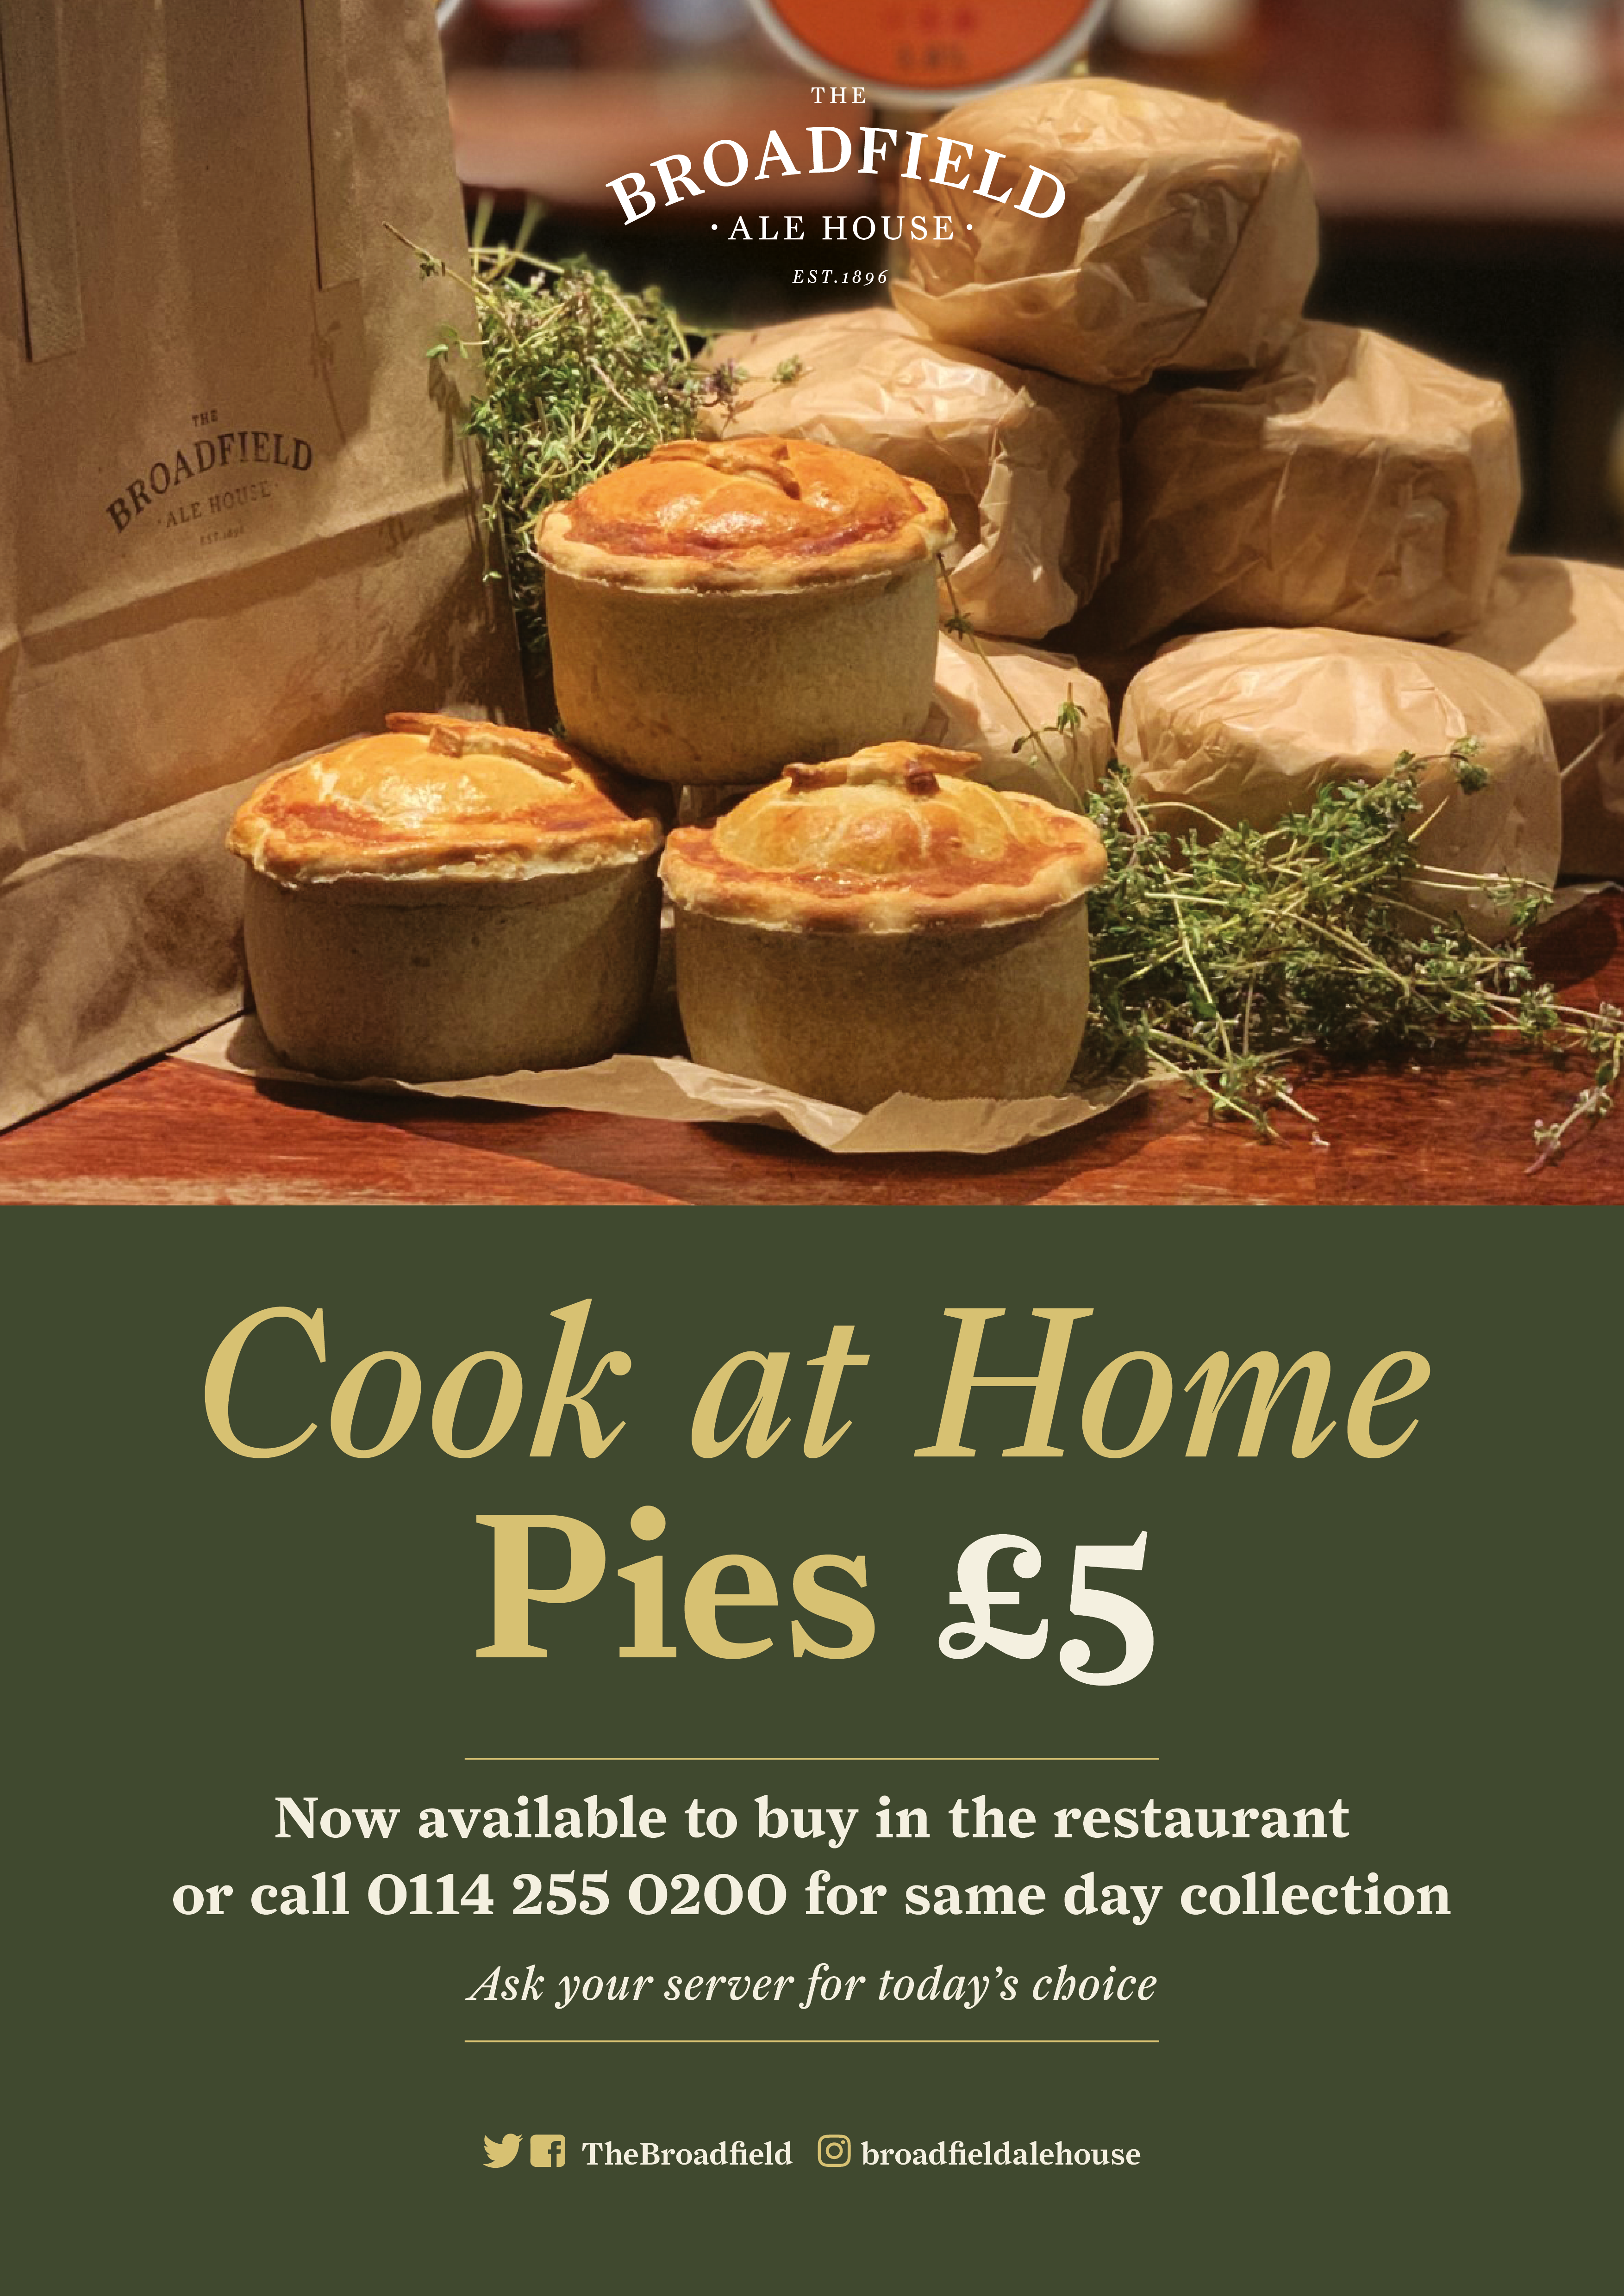 The Broadfield's Cook at Home Pies